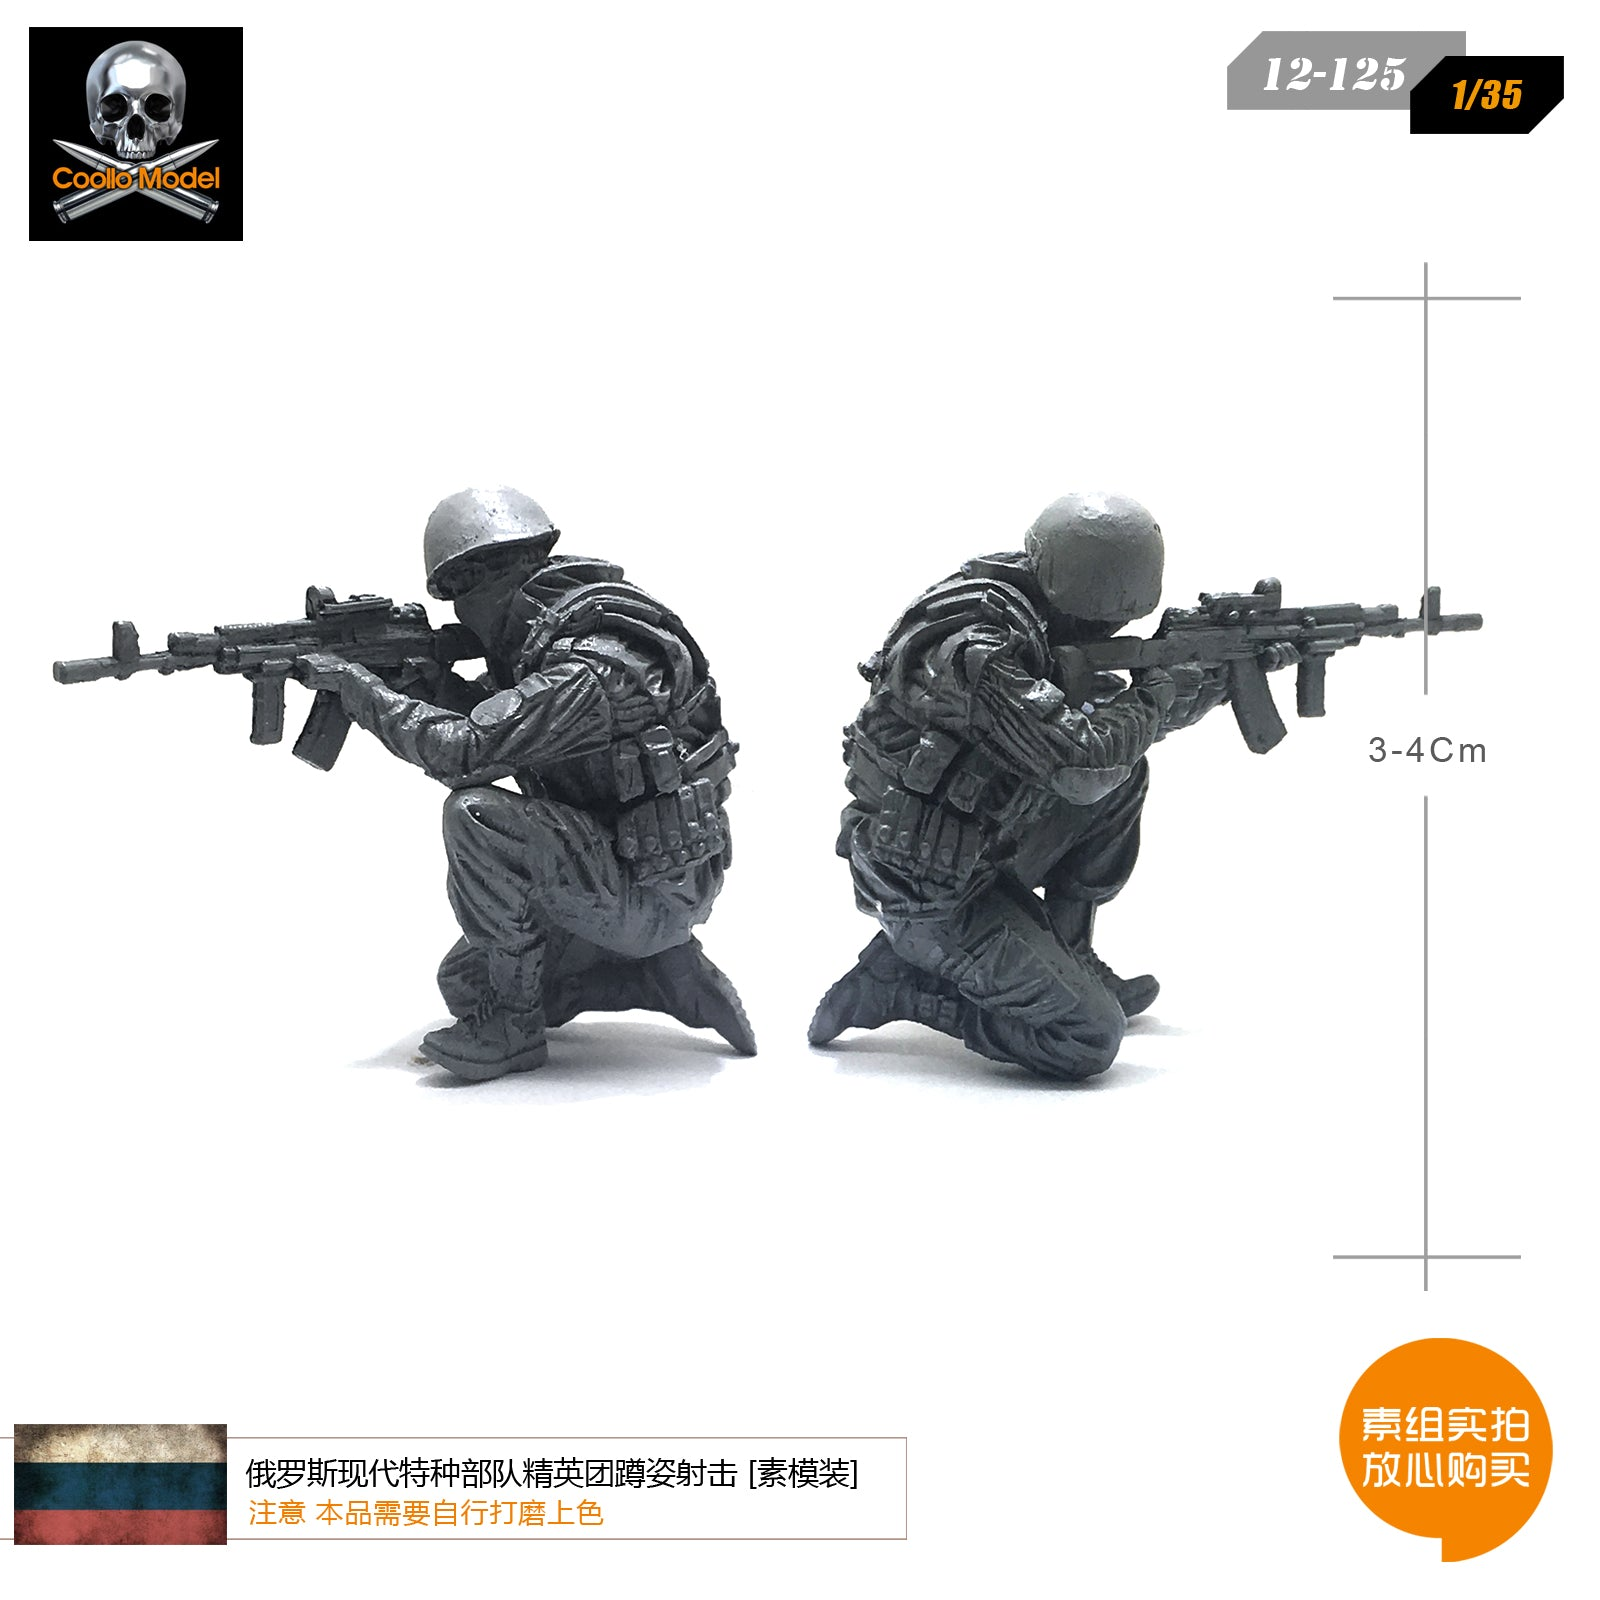 1/35 modern Russian special forces elite group squatting shot soldiers resin model 12-125